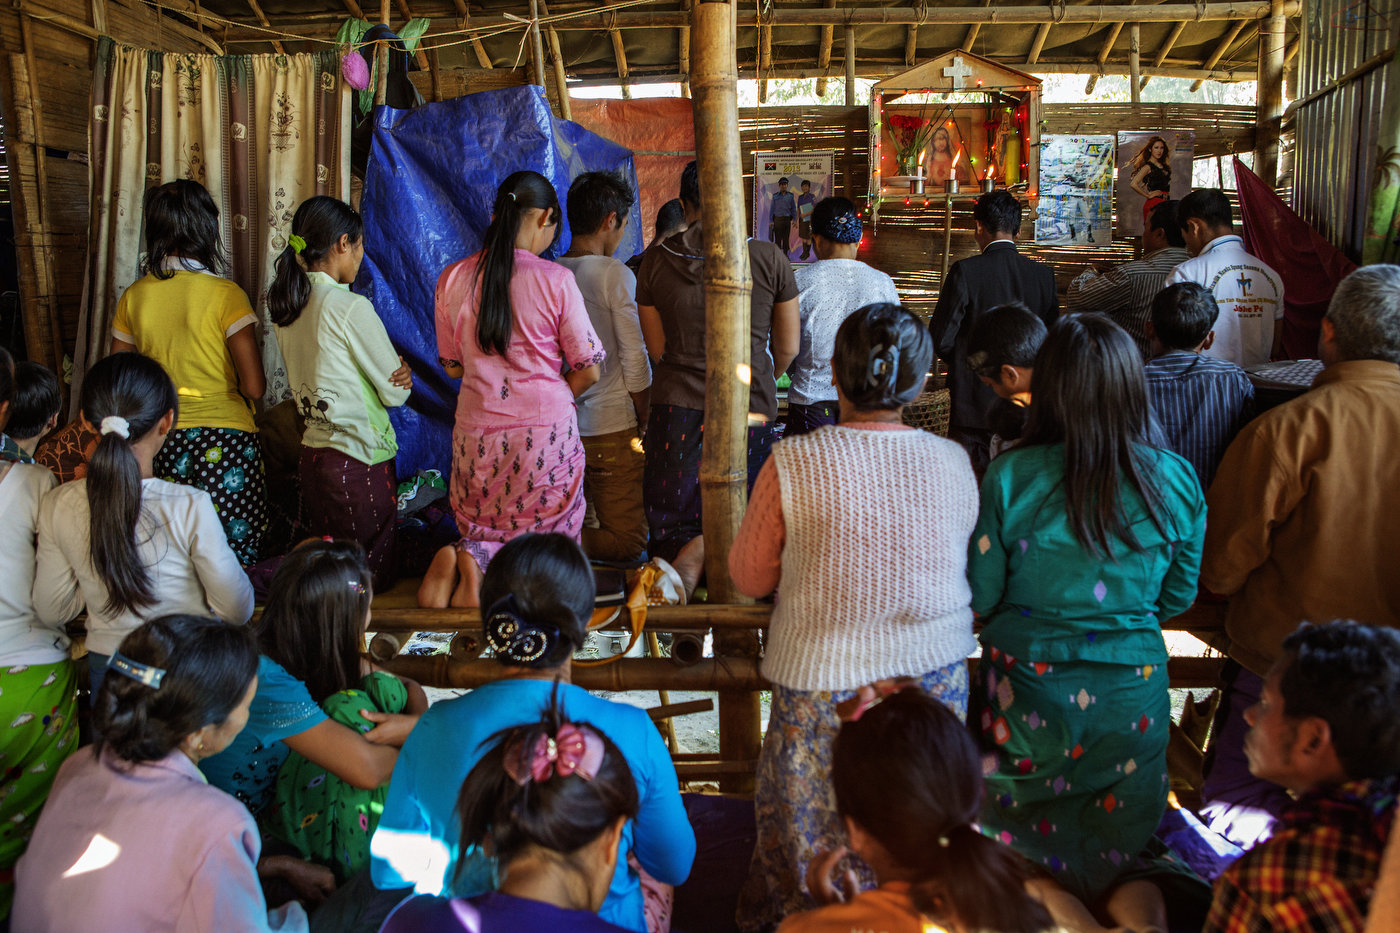 Internally displaced Kachin refugees attend a small Christmas Day Catholic service in a bamboo home at Jeyang refugee camp December 25, 2012 outside of Laiza, Kachin State in northern Myanmar. The camp is home to app. 7500 refugees.